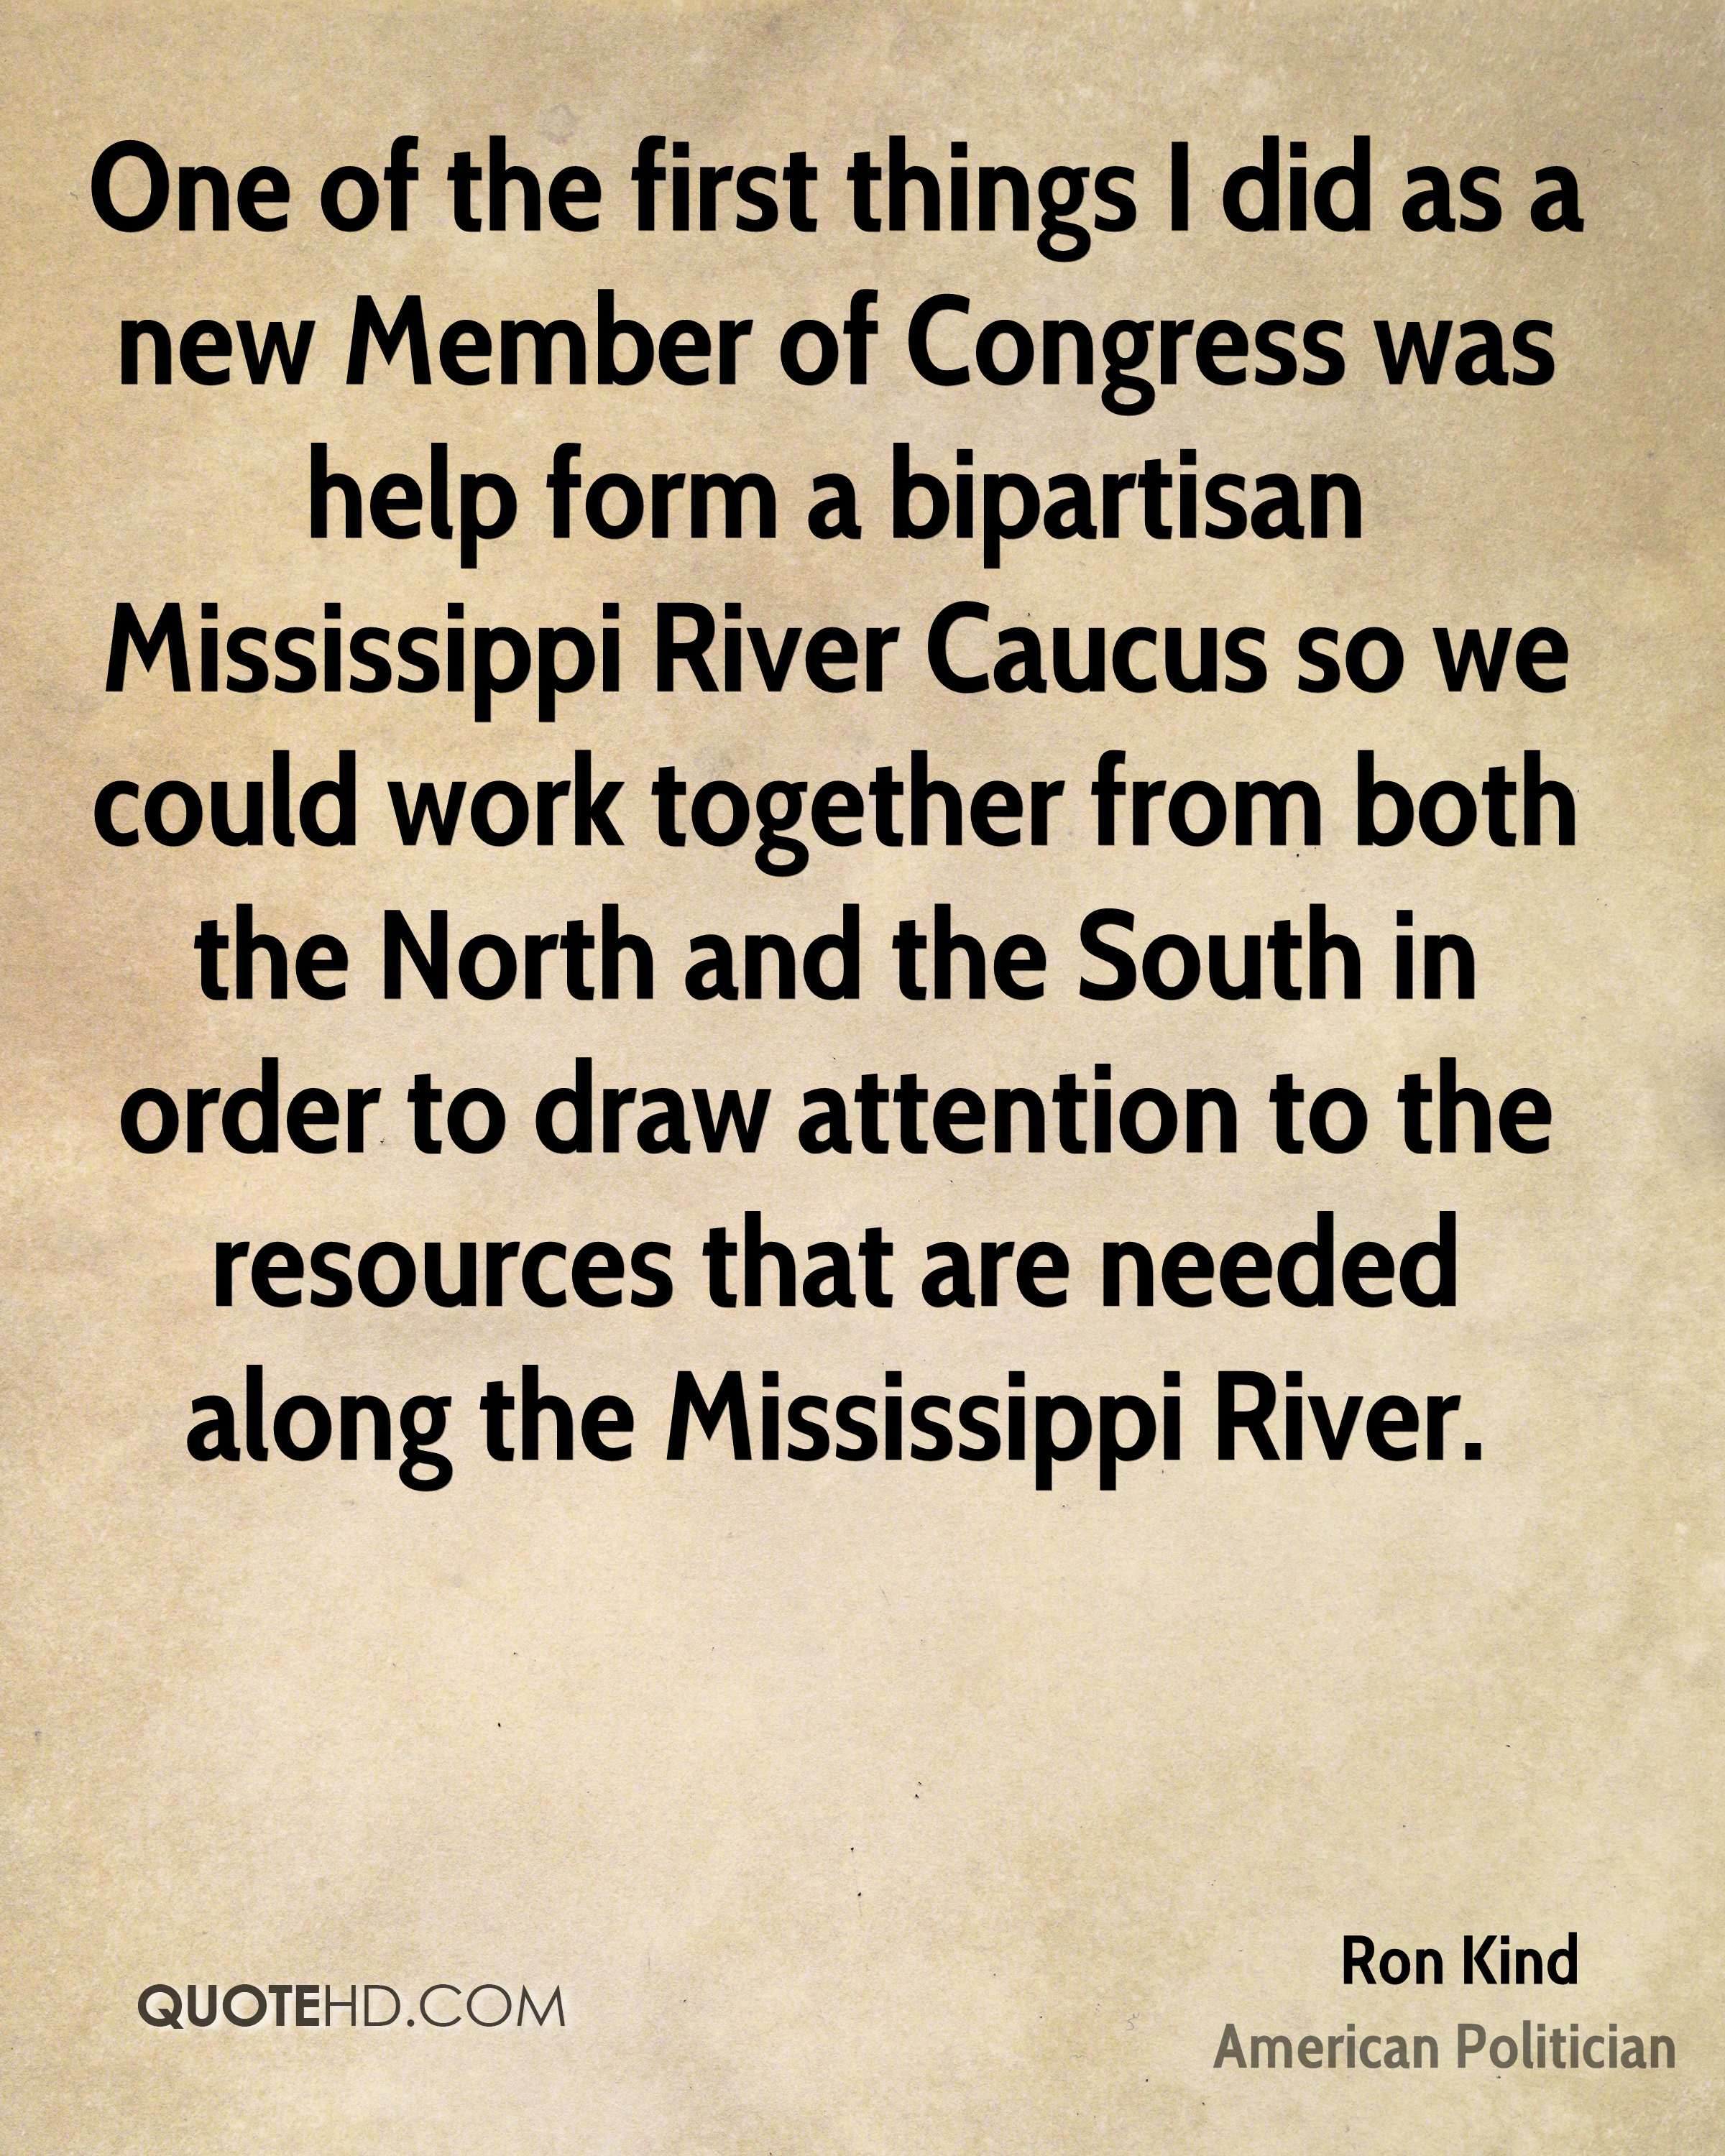 One of the first things I did as a new Member of Congress was help form a bipartisan Mississippi River Caucus so we could work together from both the North and the South in order to draw attention to the resources that are needed along the Mississippi River.